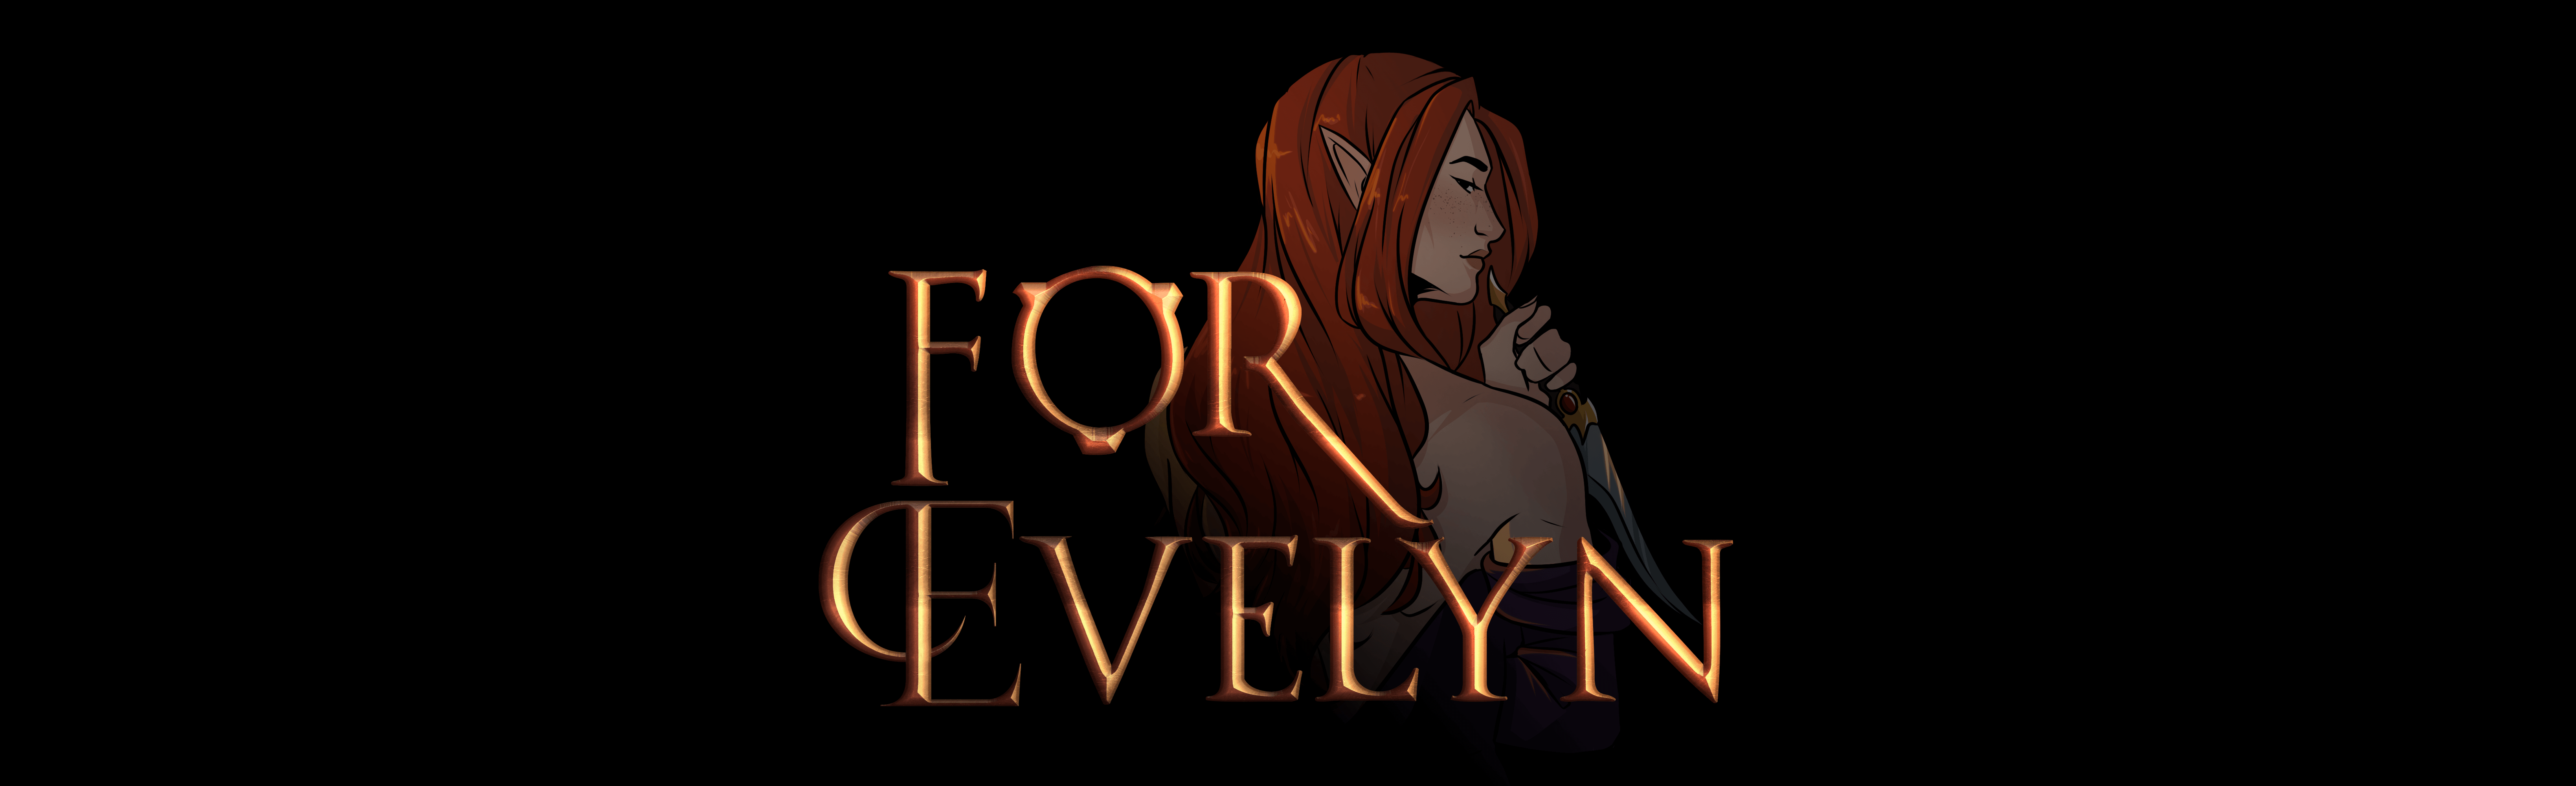 For Evelyn